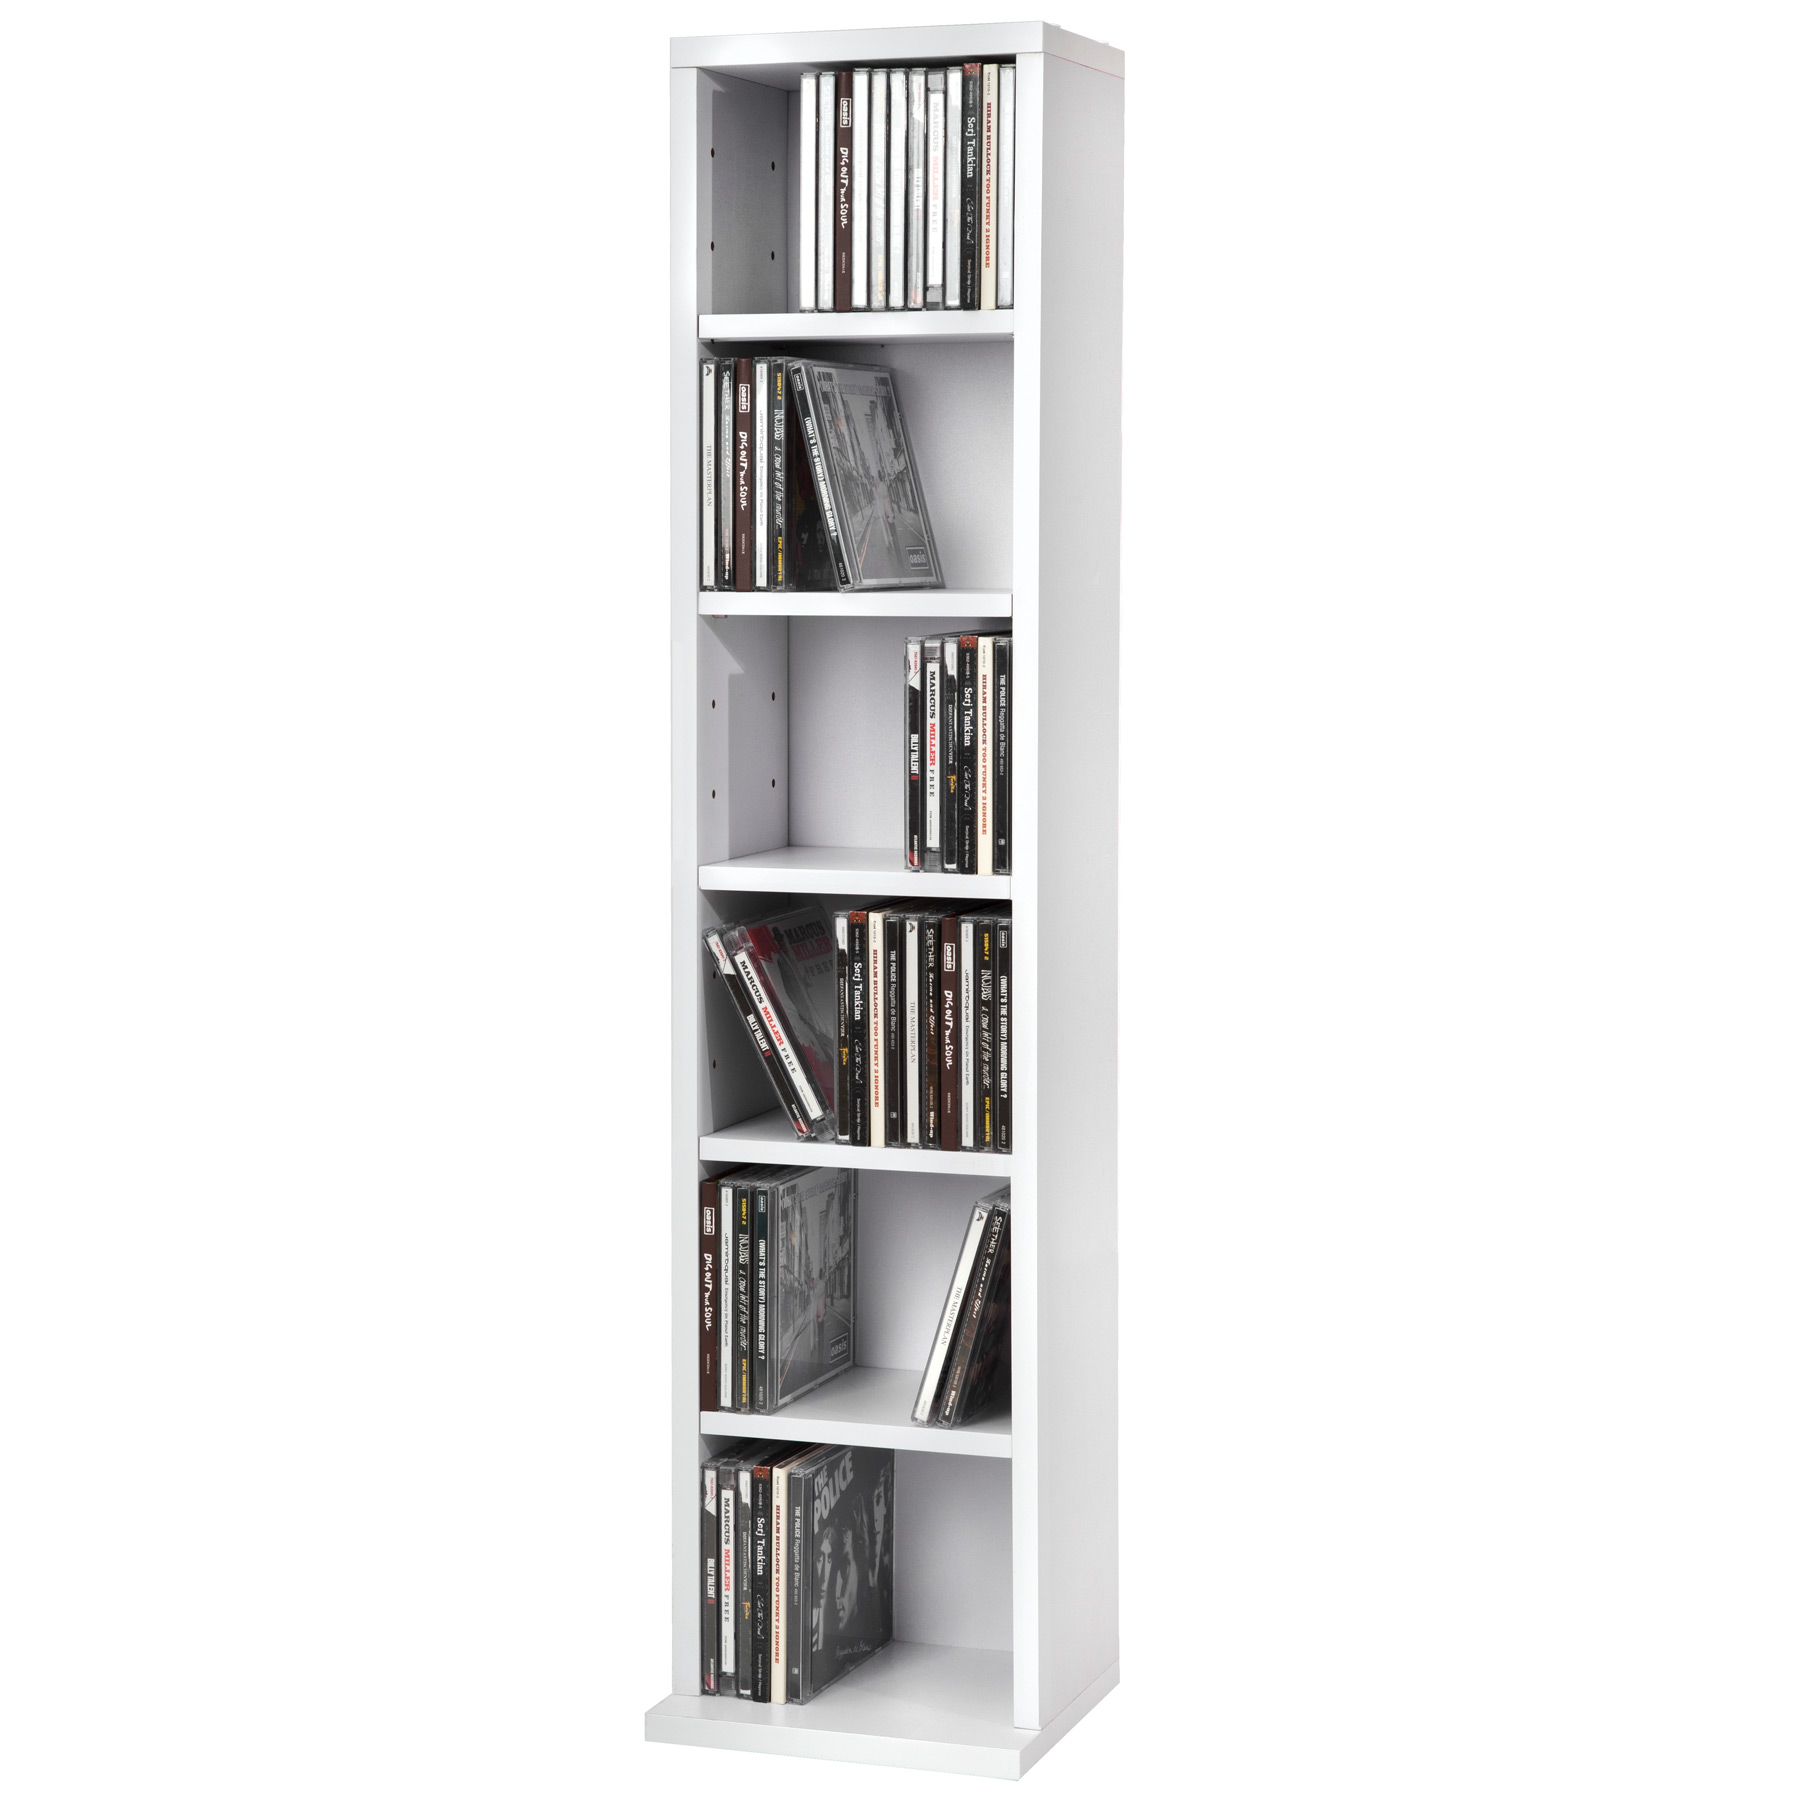 tag re rangement cd dvd meuble de rangement pour 102 cds m dia unit blanc ebay. Black Bedroom Furniture Sets. Home Design Ideas